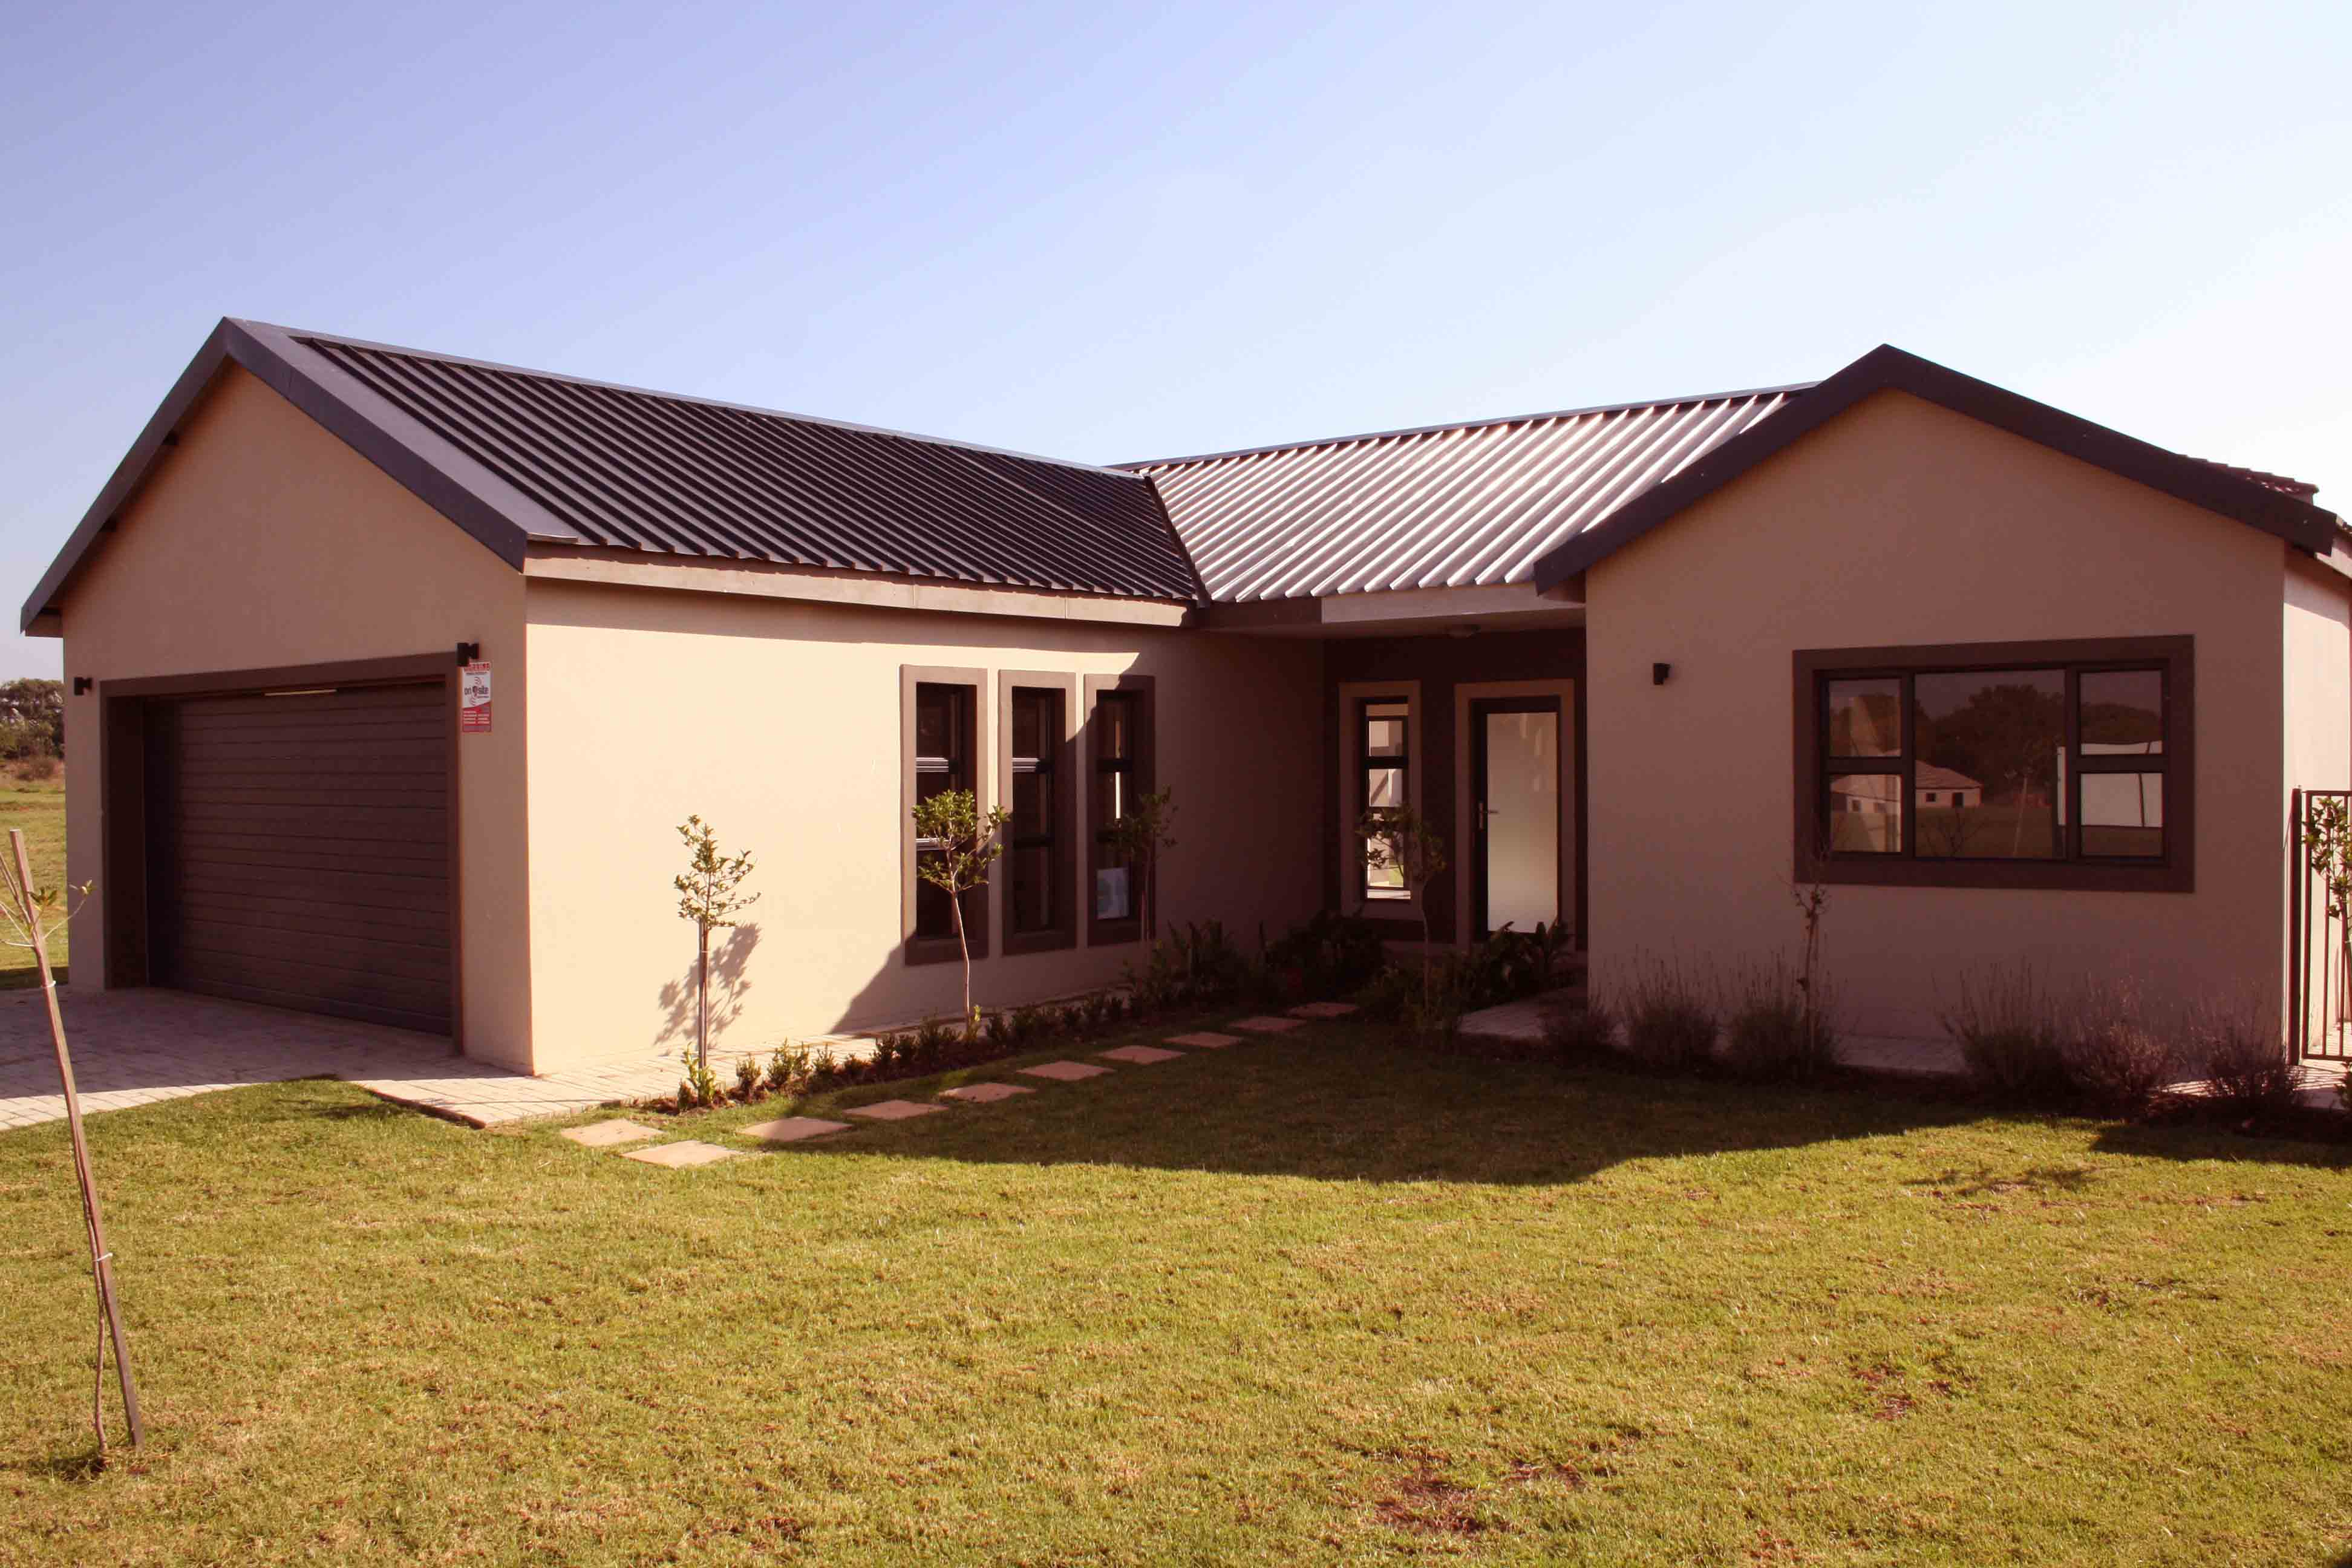 3 BedroomHouse For Sale In Mooivallei A H